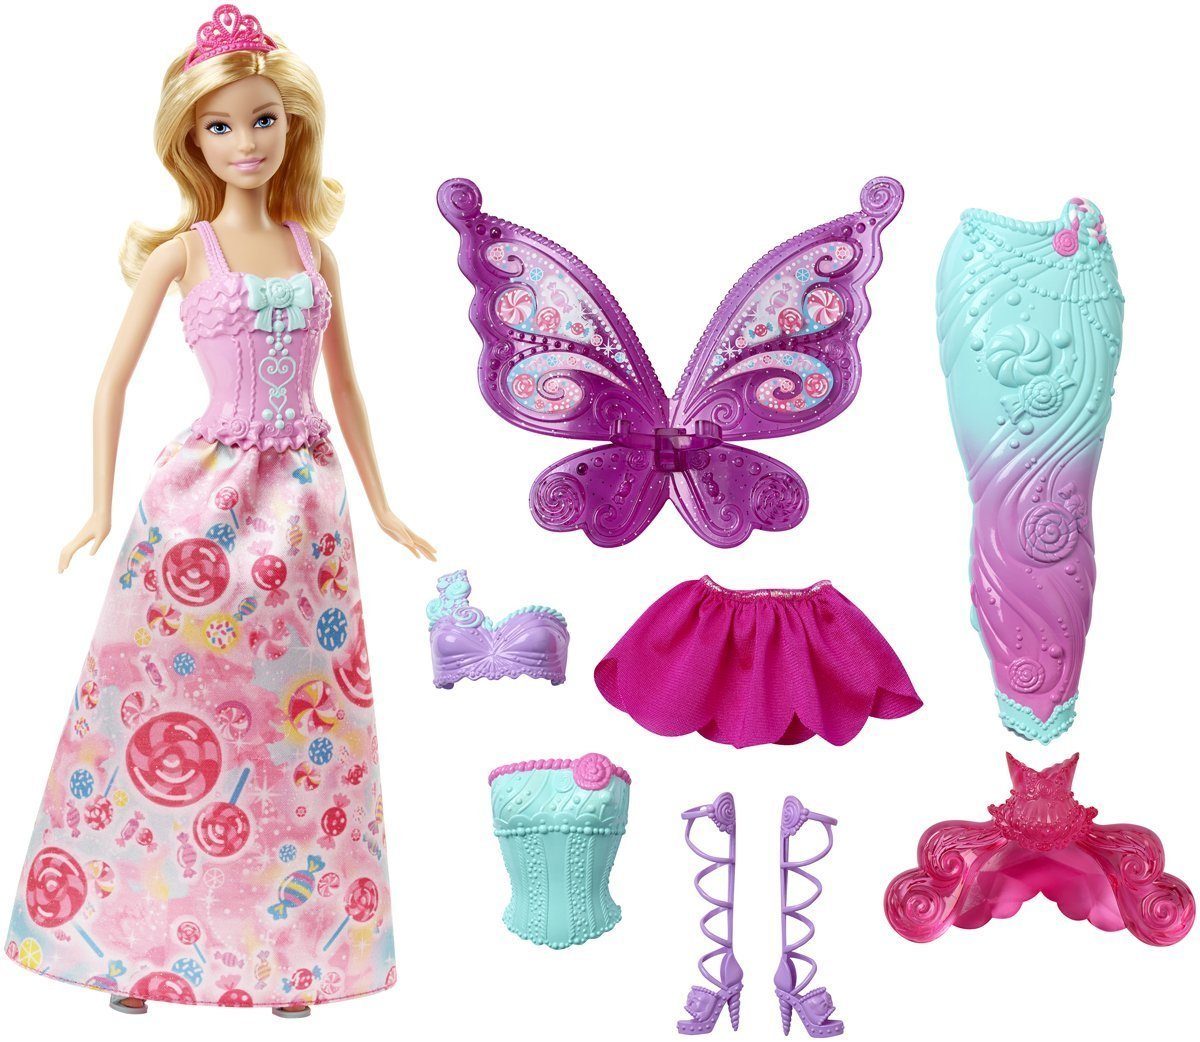 4 year old girls love barbies! They are great toys for playing with!